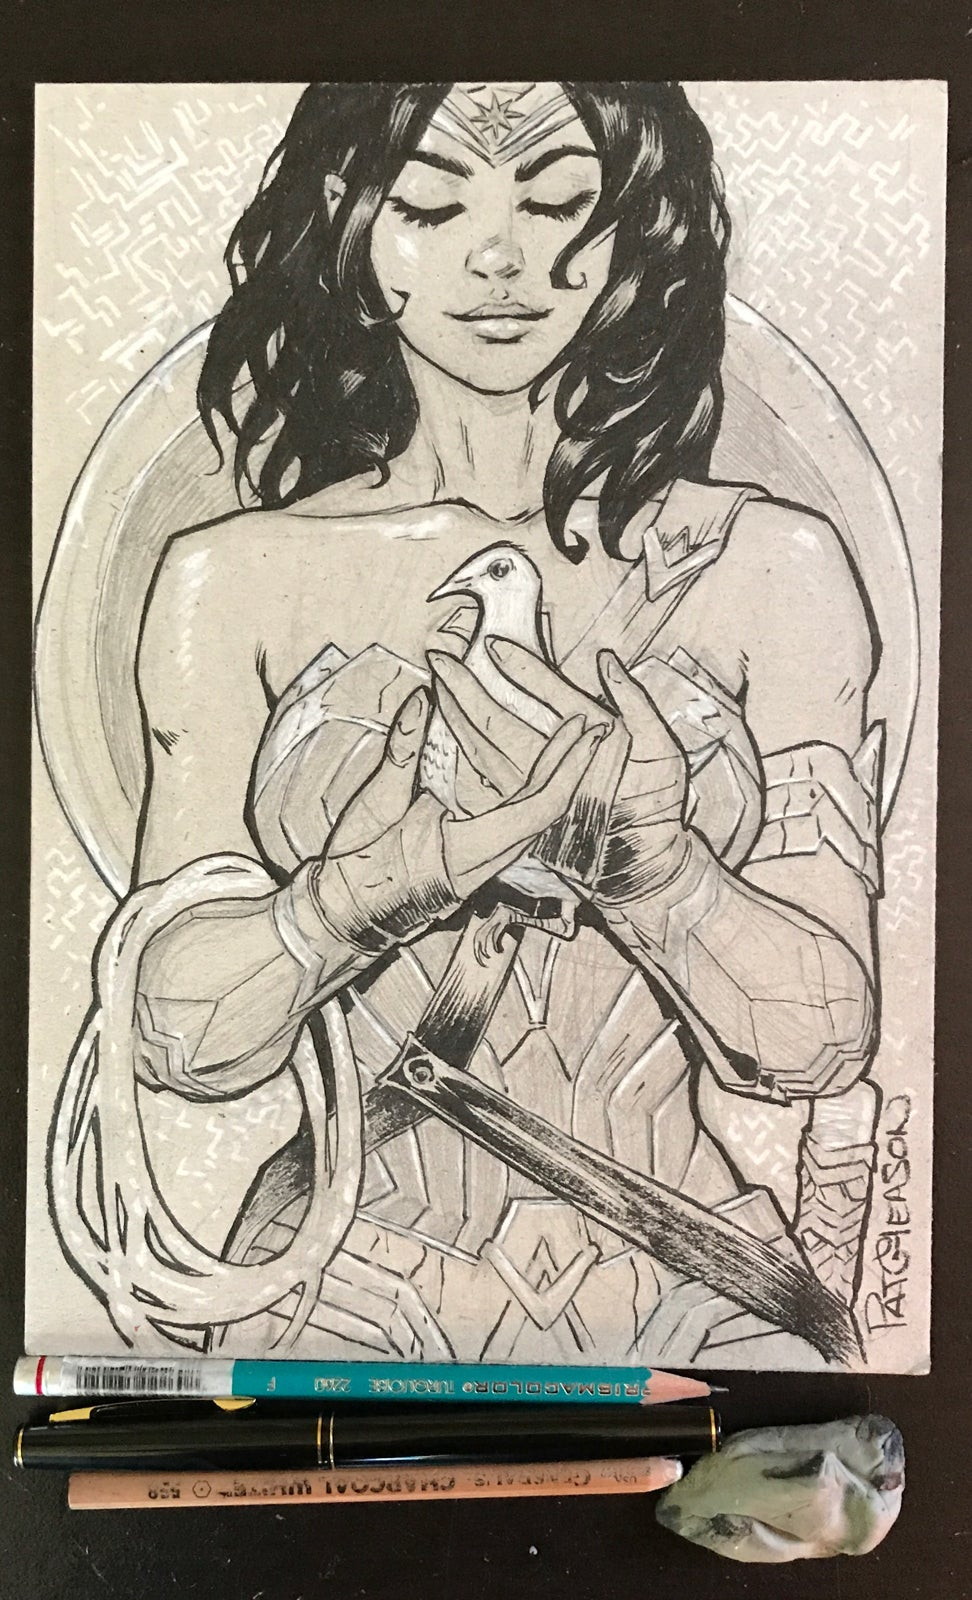 Image of Diana and Dove. Wonder Woman.